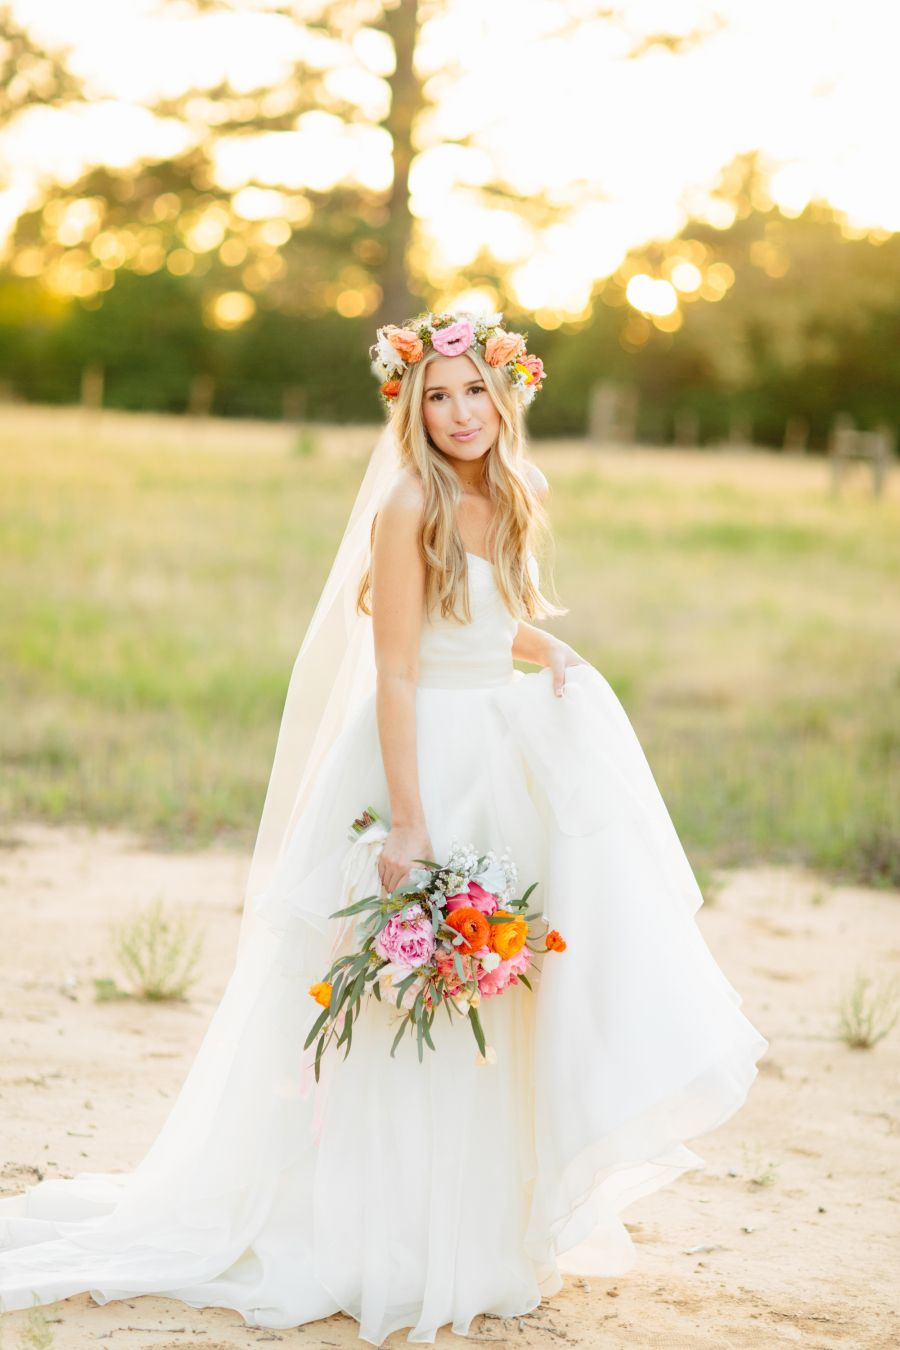 Rustic wedding with pops of pink wedding dress vaulting and wedding